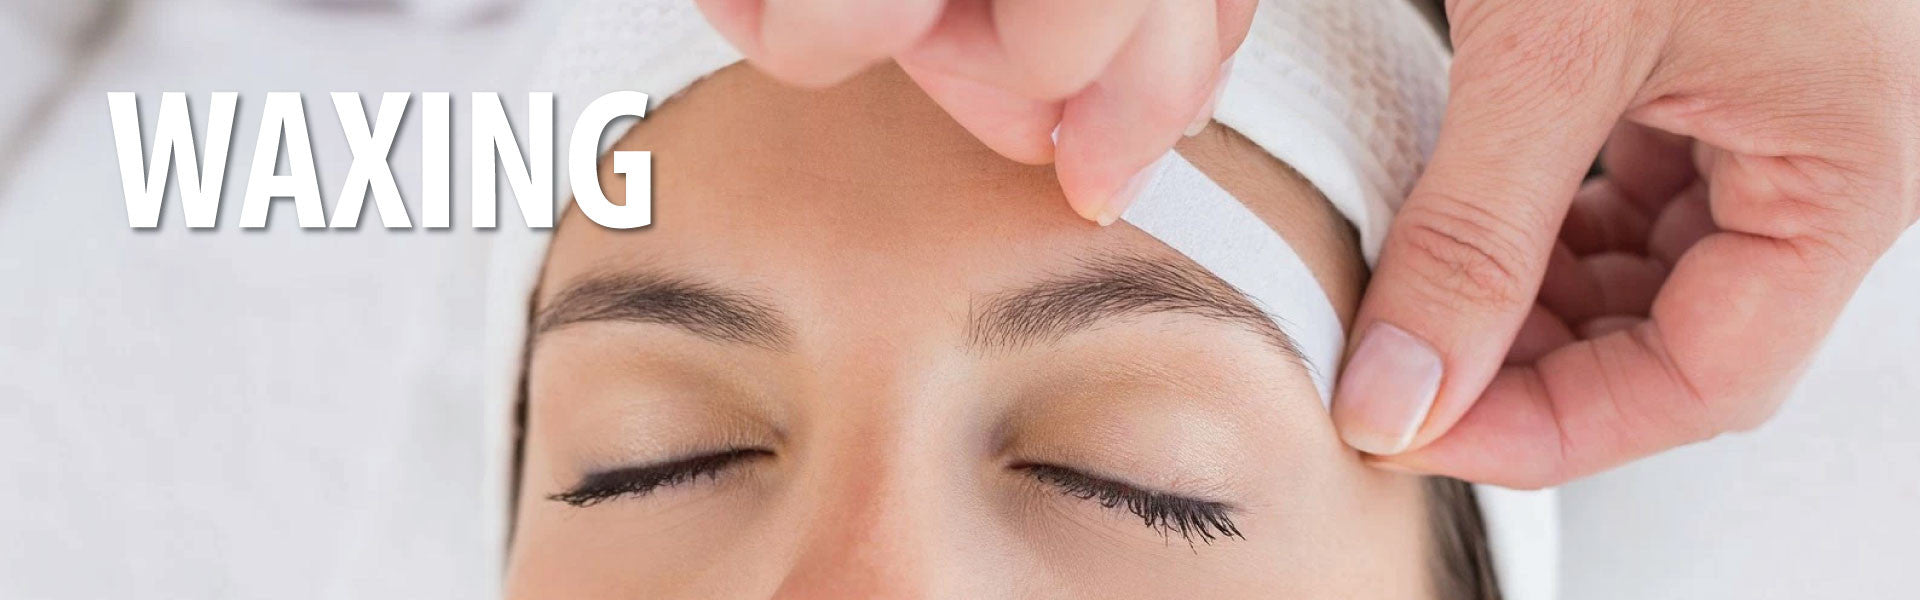 Face and Body Waxing West Palm Beach Salon